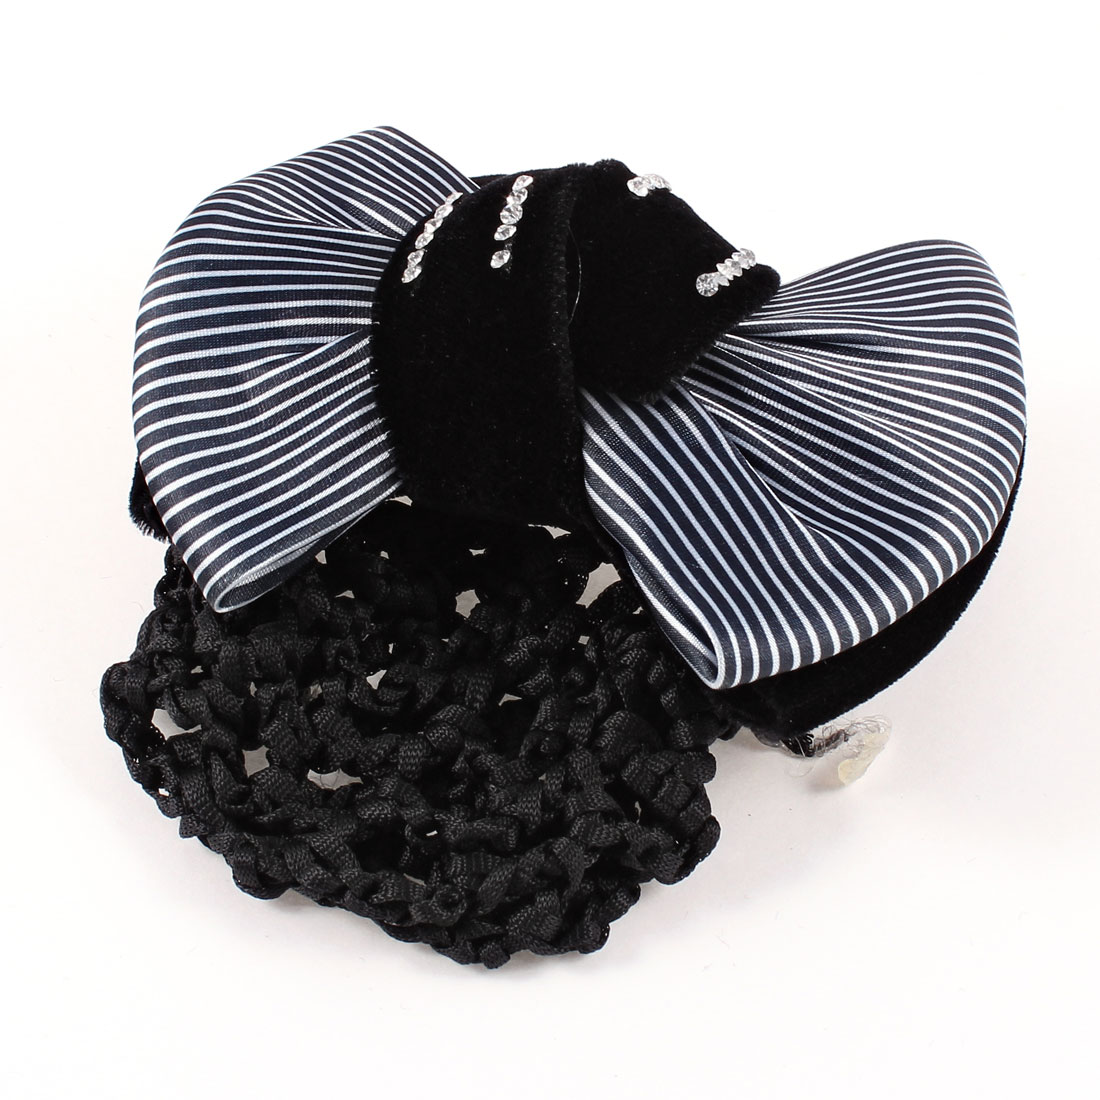 Black White Striped Dual Bowknot Snood Net French Hair Clip Barrette